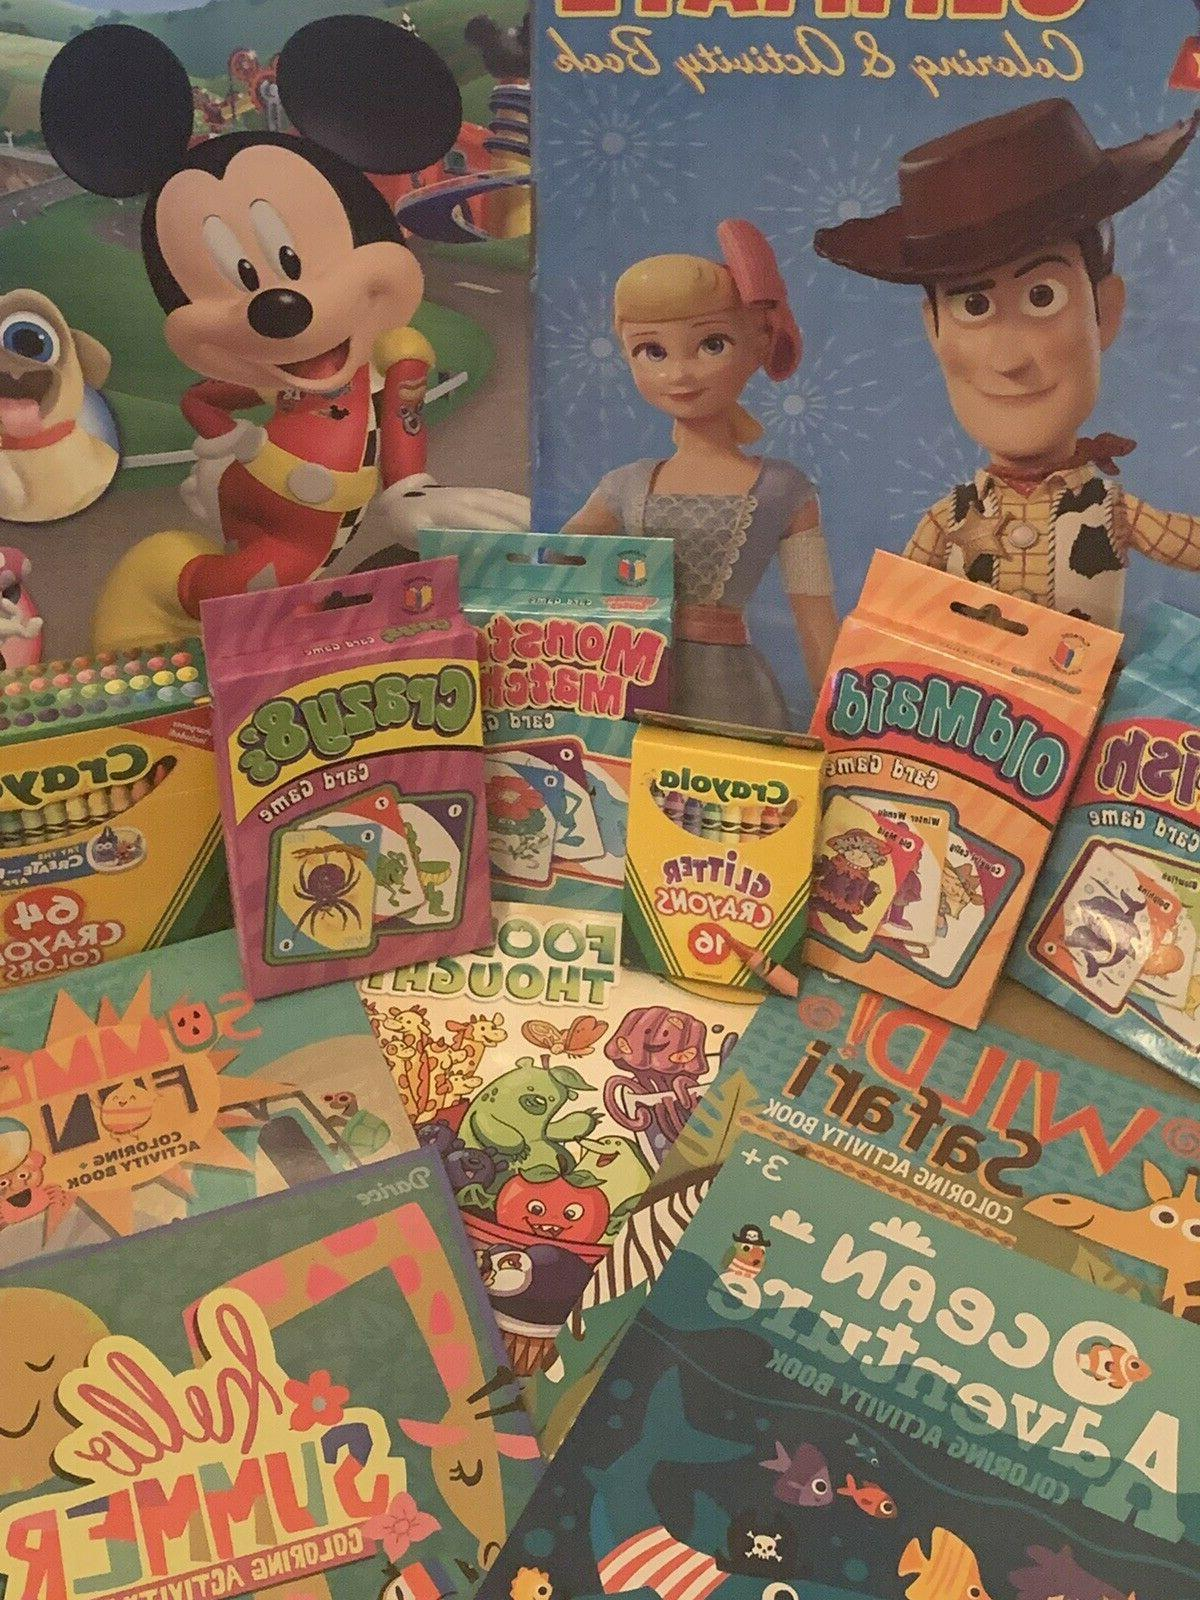 Kid's games, crayola crayons, and stickers lot 17